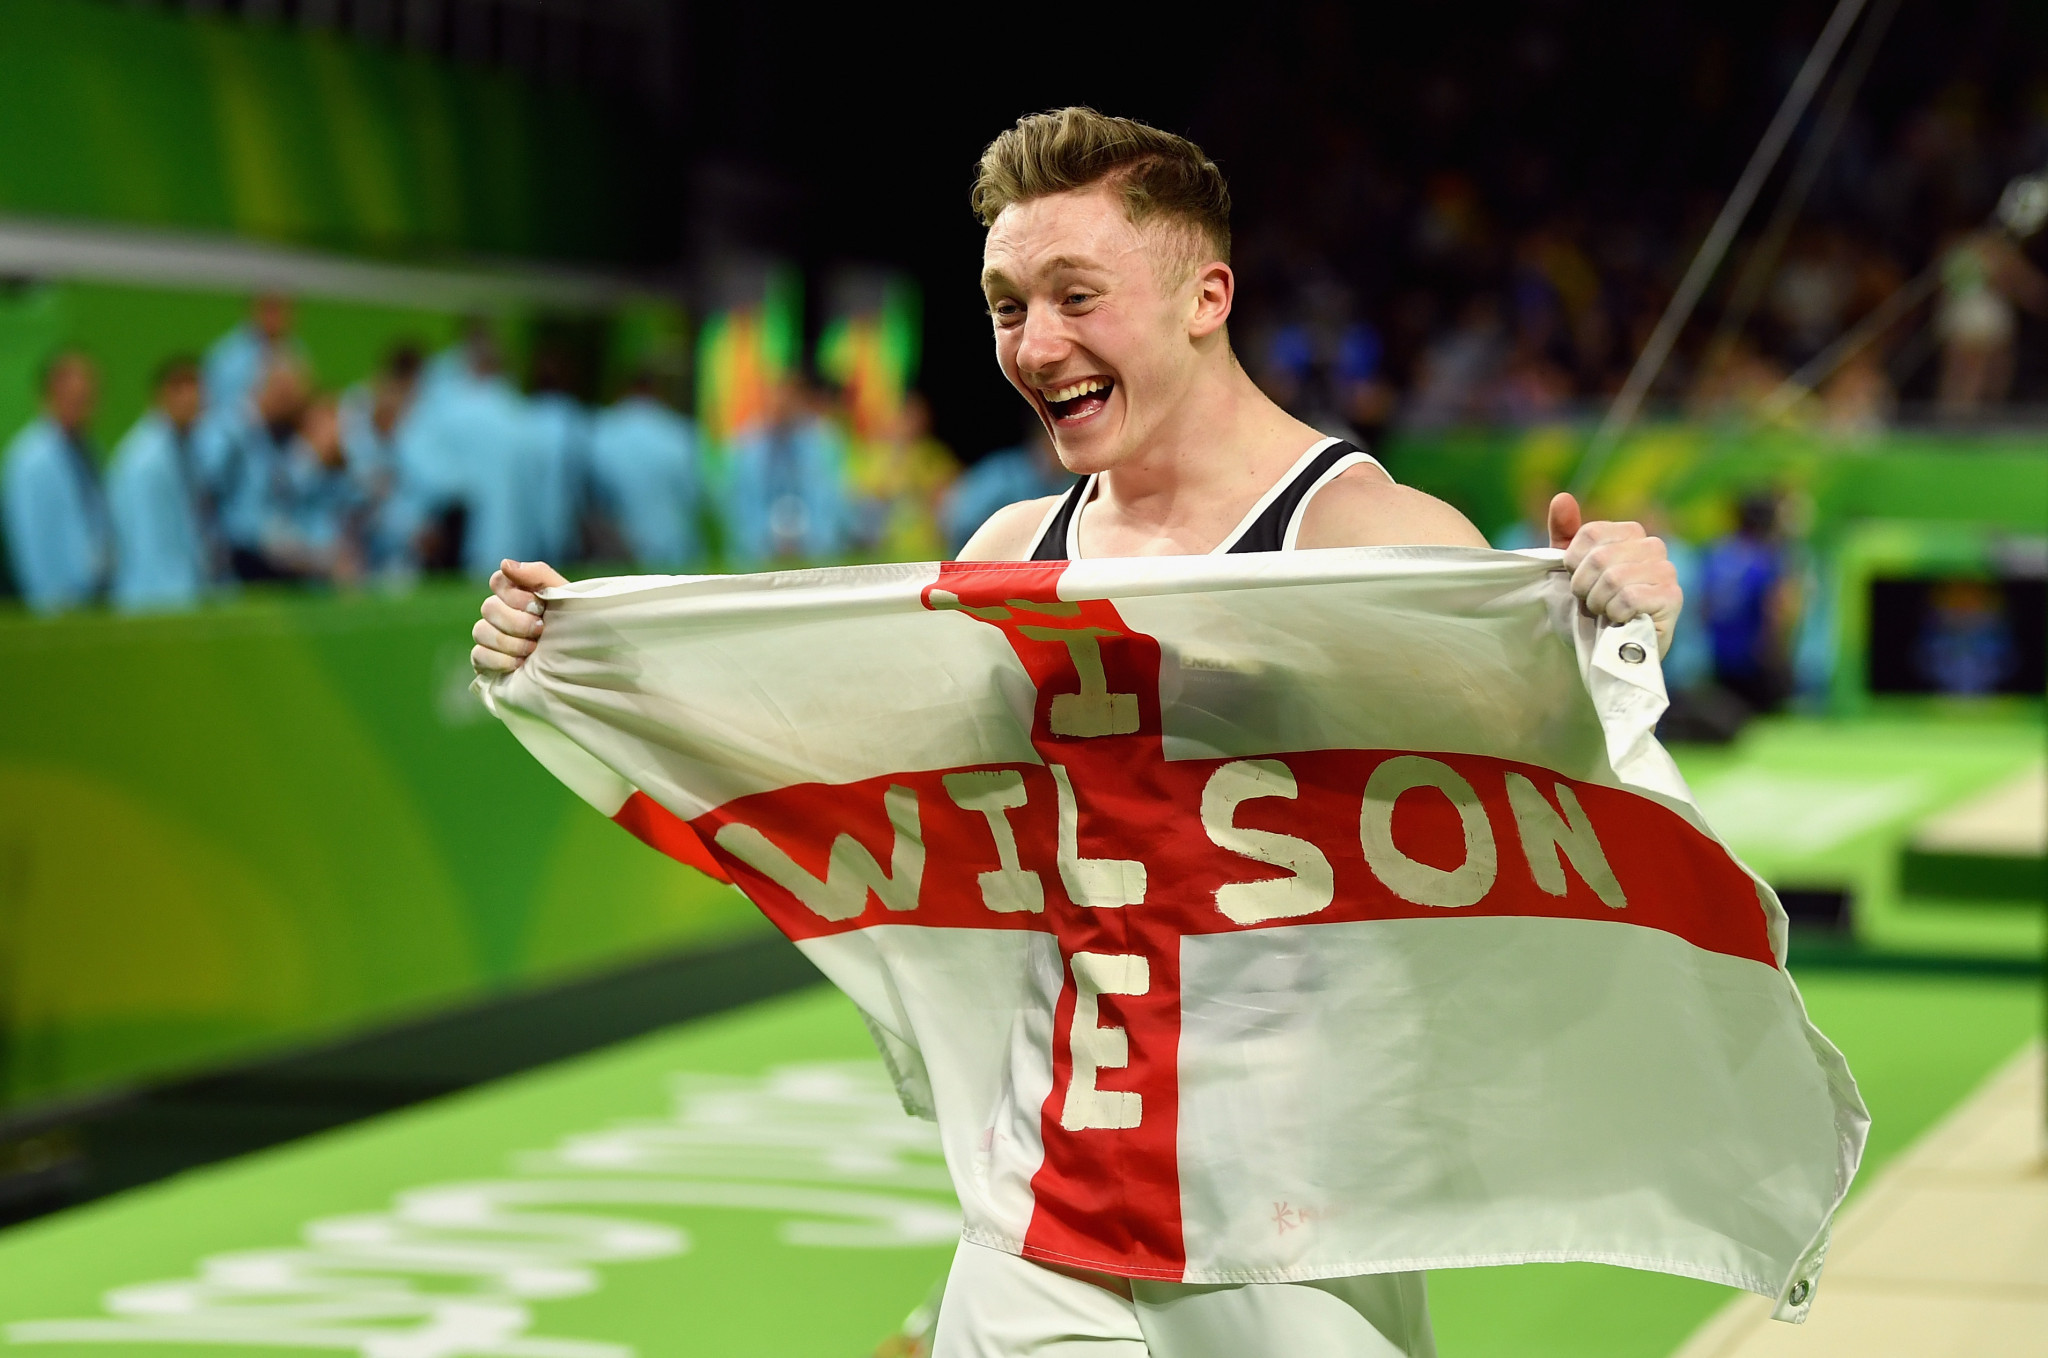 Nile Wilson secured the men's all-around individual title ©Getty Images